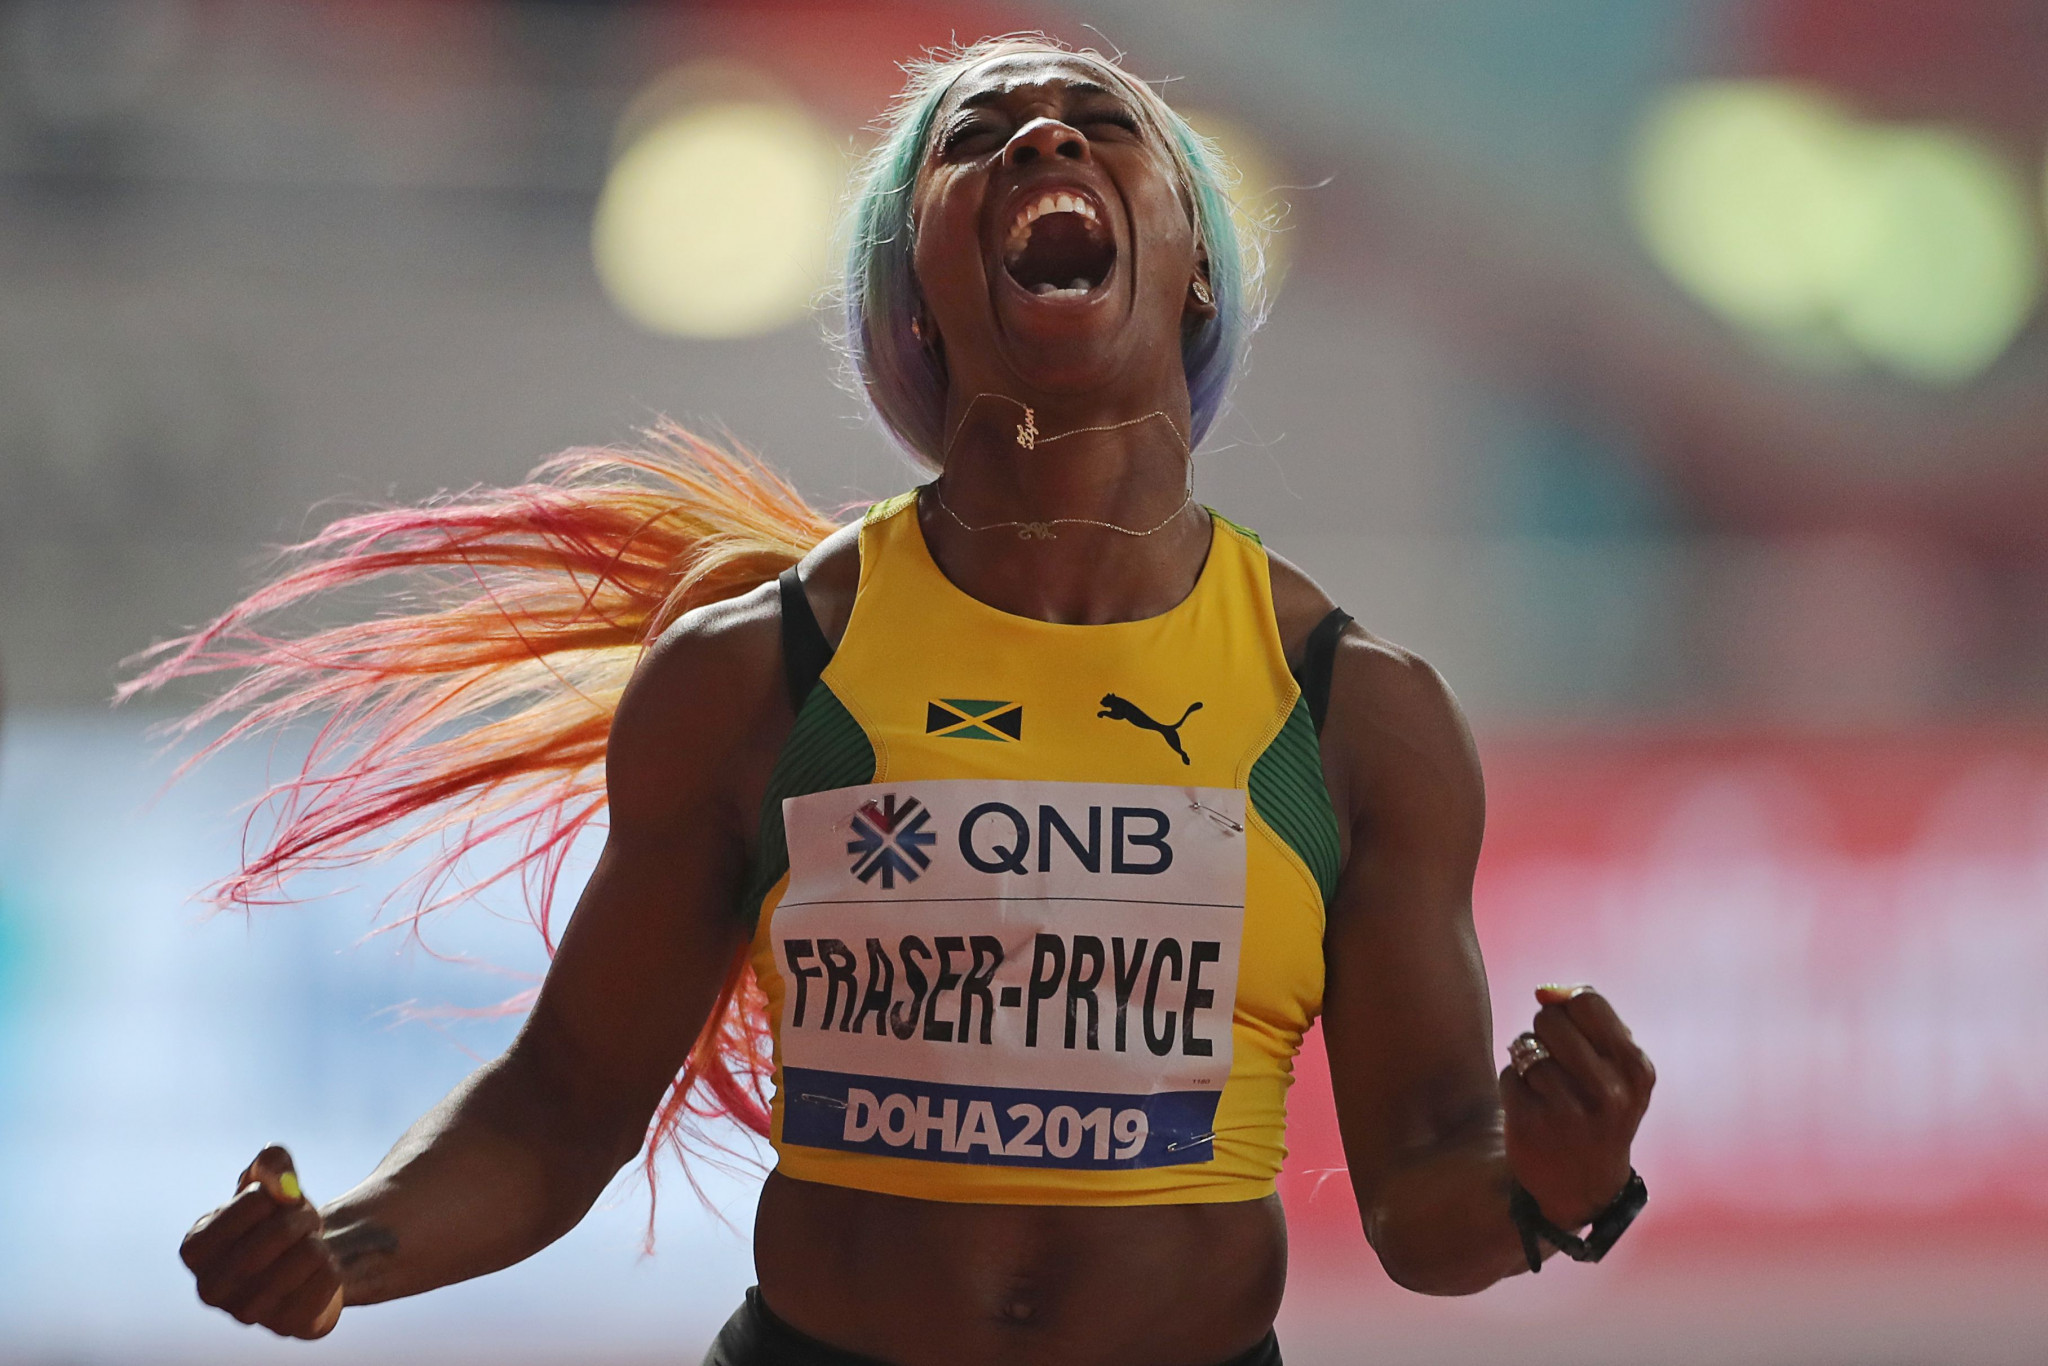 Fraser-Pryce regains women's world 100m title in Doha as Sidorova and Taylor earn dramatic wins